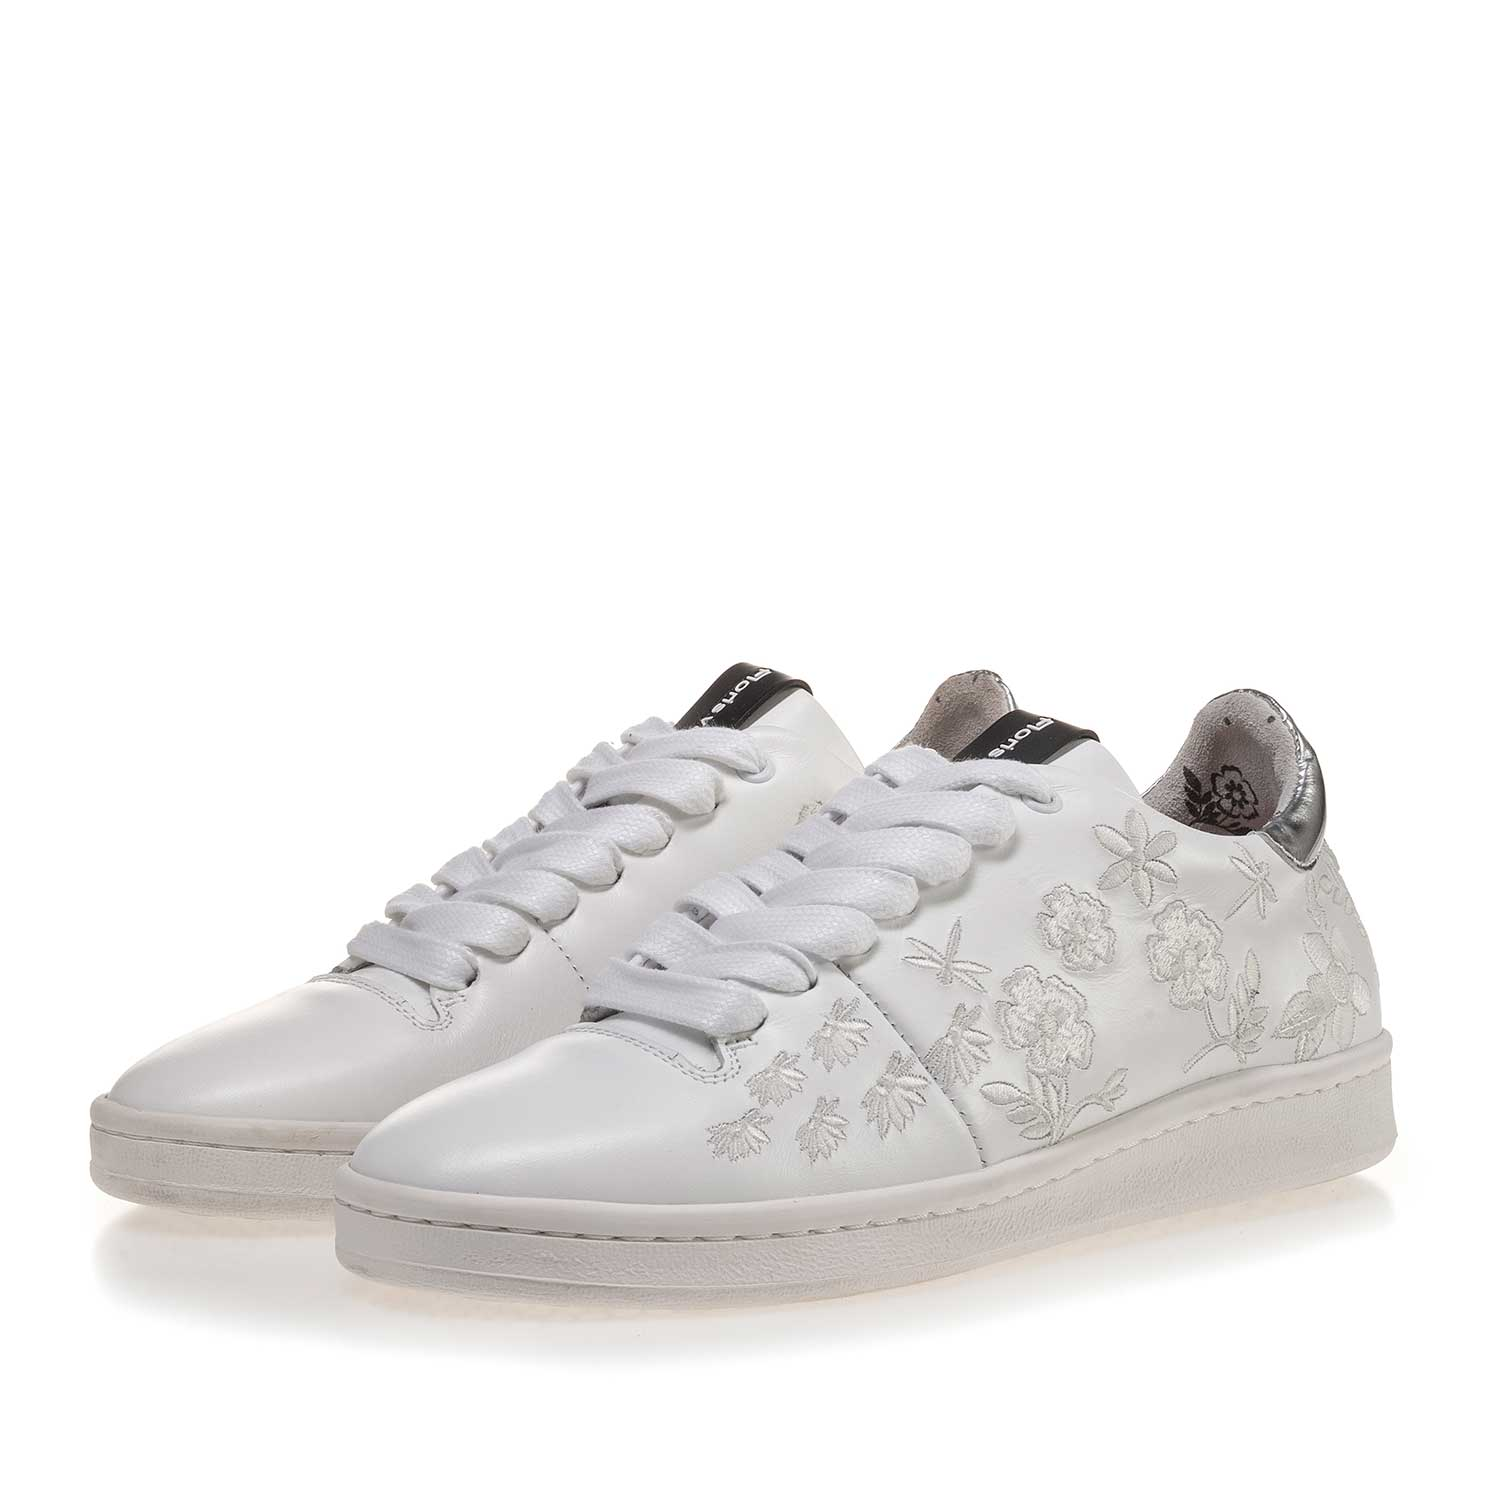 85235/01 - White leather sneaker with floral embroidery stitching